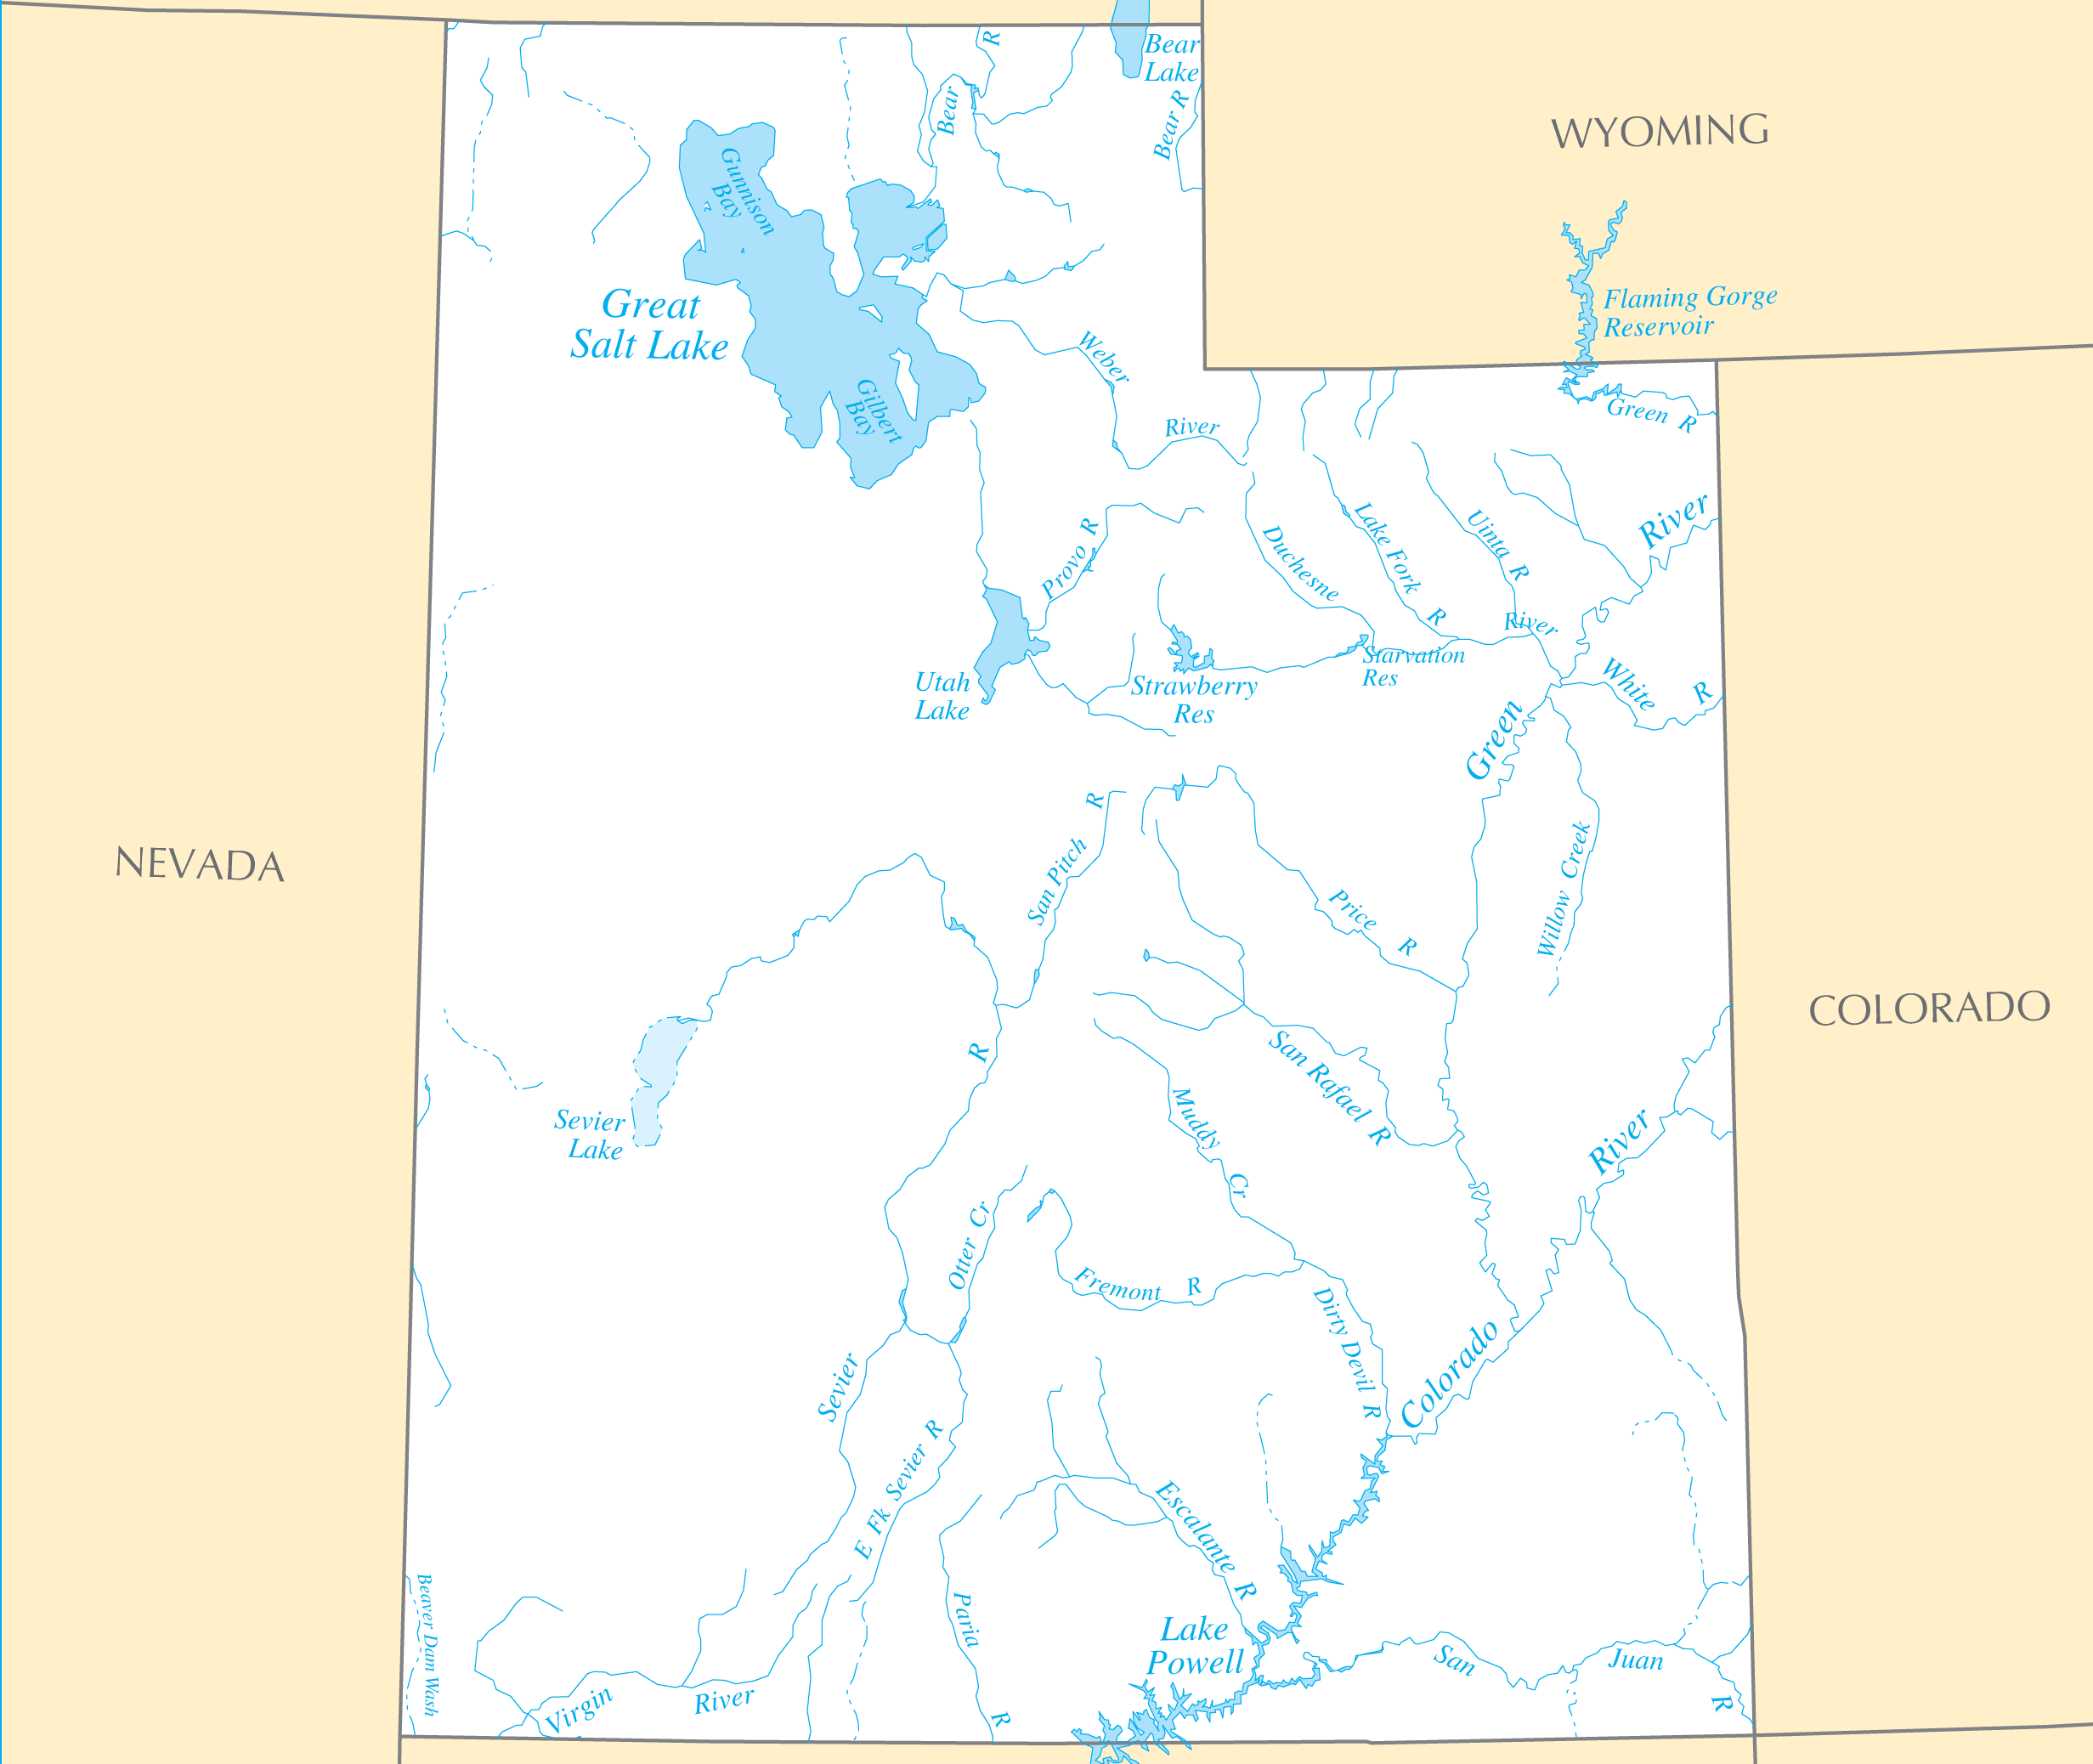 Utah Rivers And Lakes large map